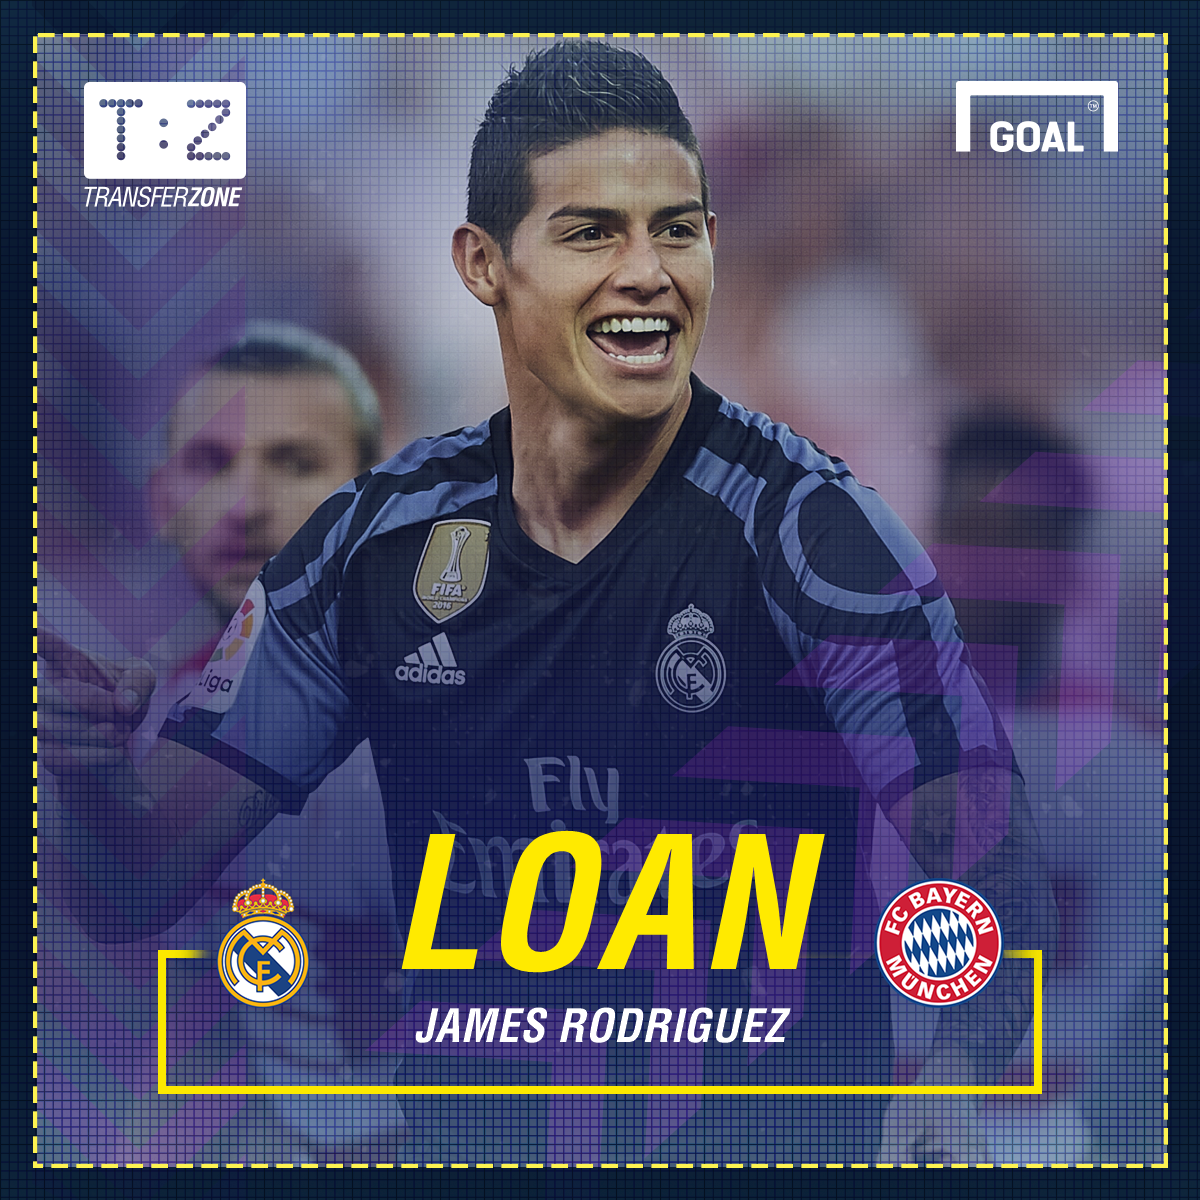 7dbc93c8820 Real Madrid s James Rodriguez signs for Bayern Munich on loan